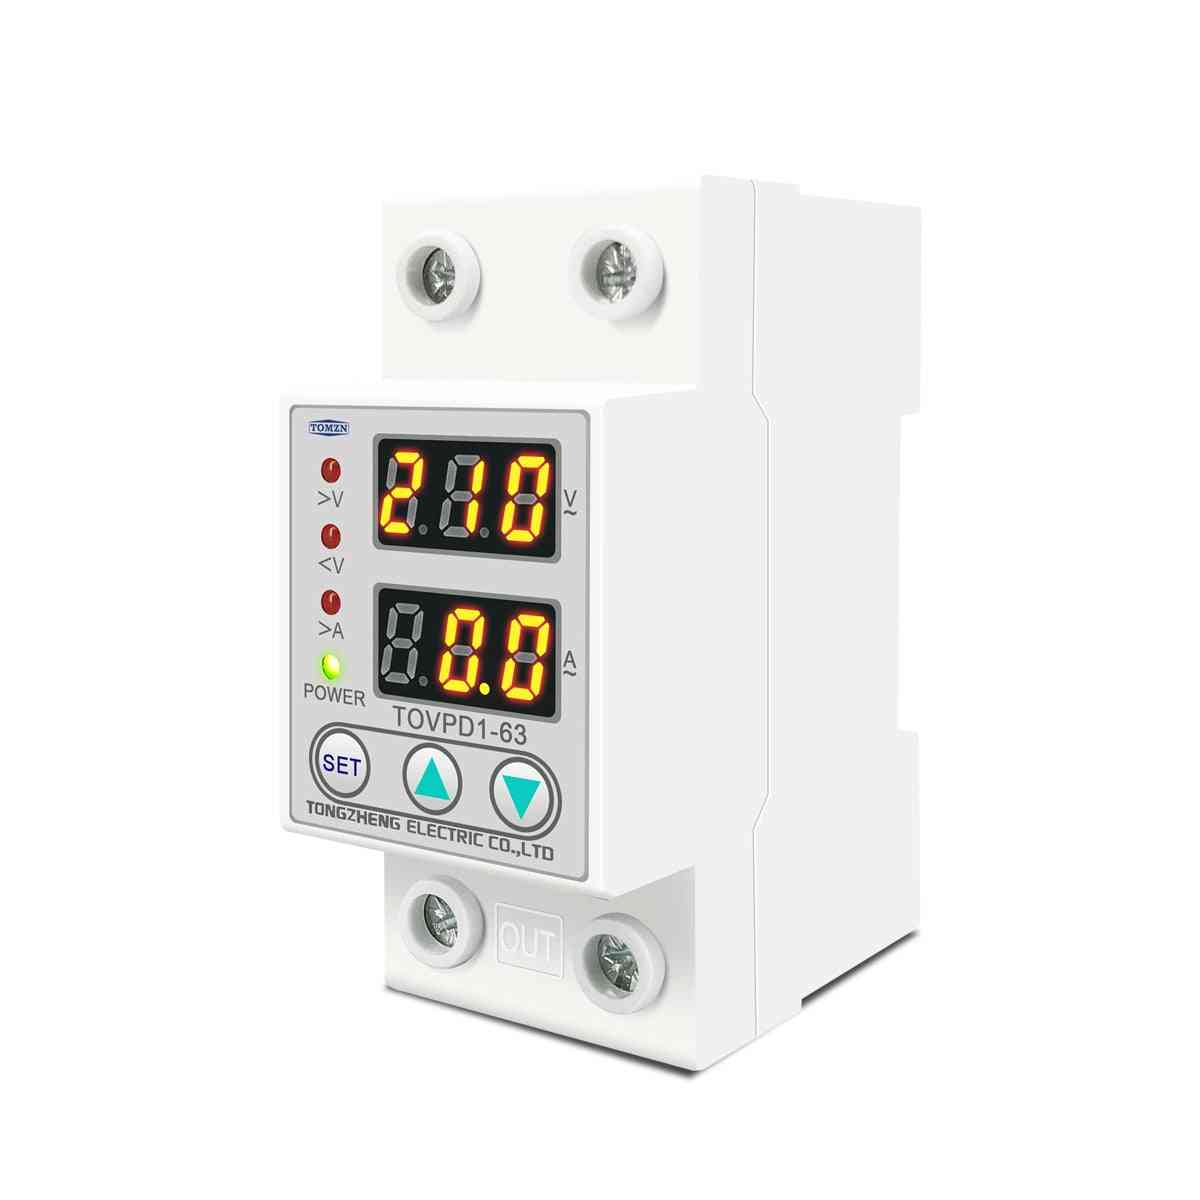 Adjustable Over & Under Voltage Protective Device Protector With Current Limiting Protection Voltmeter